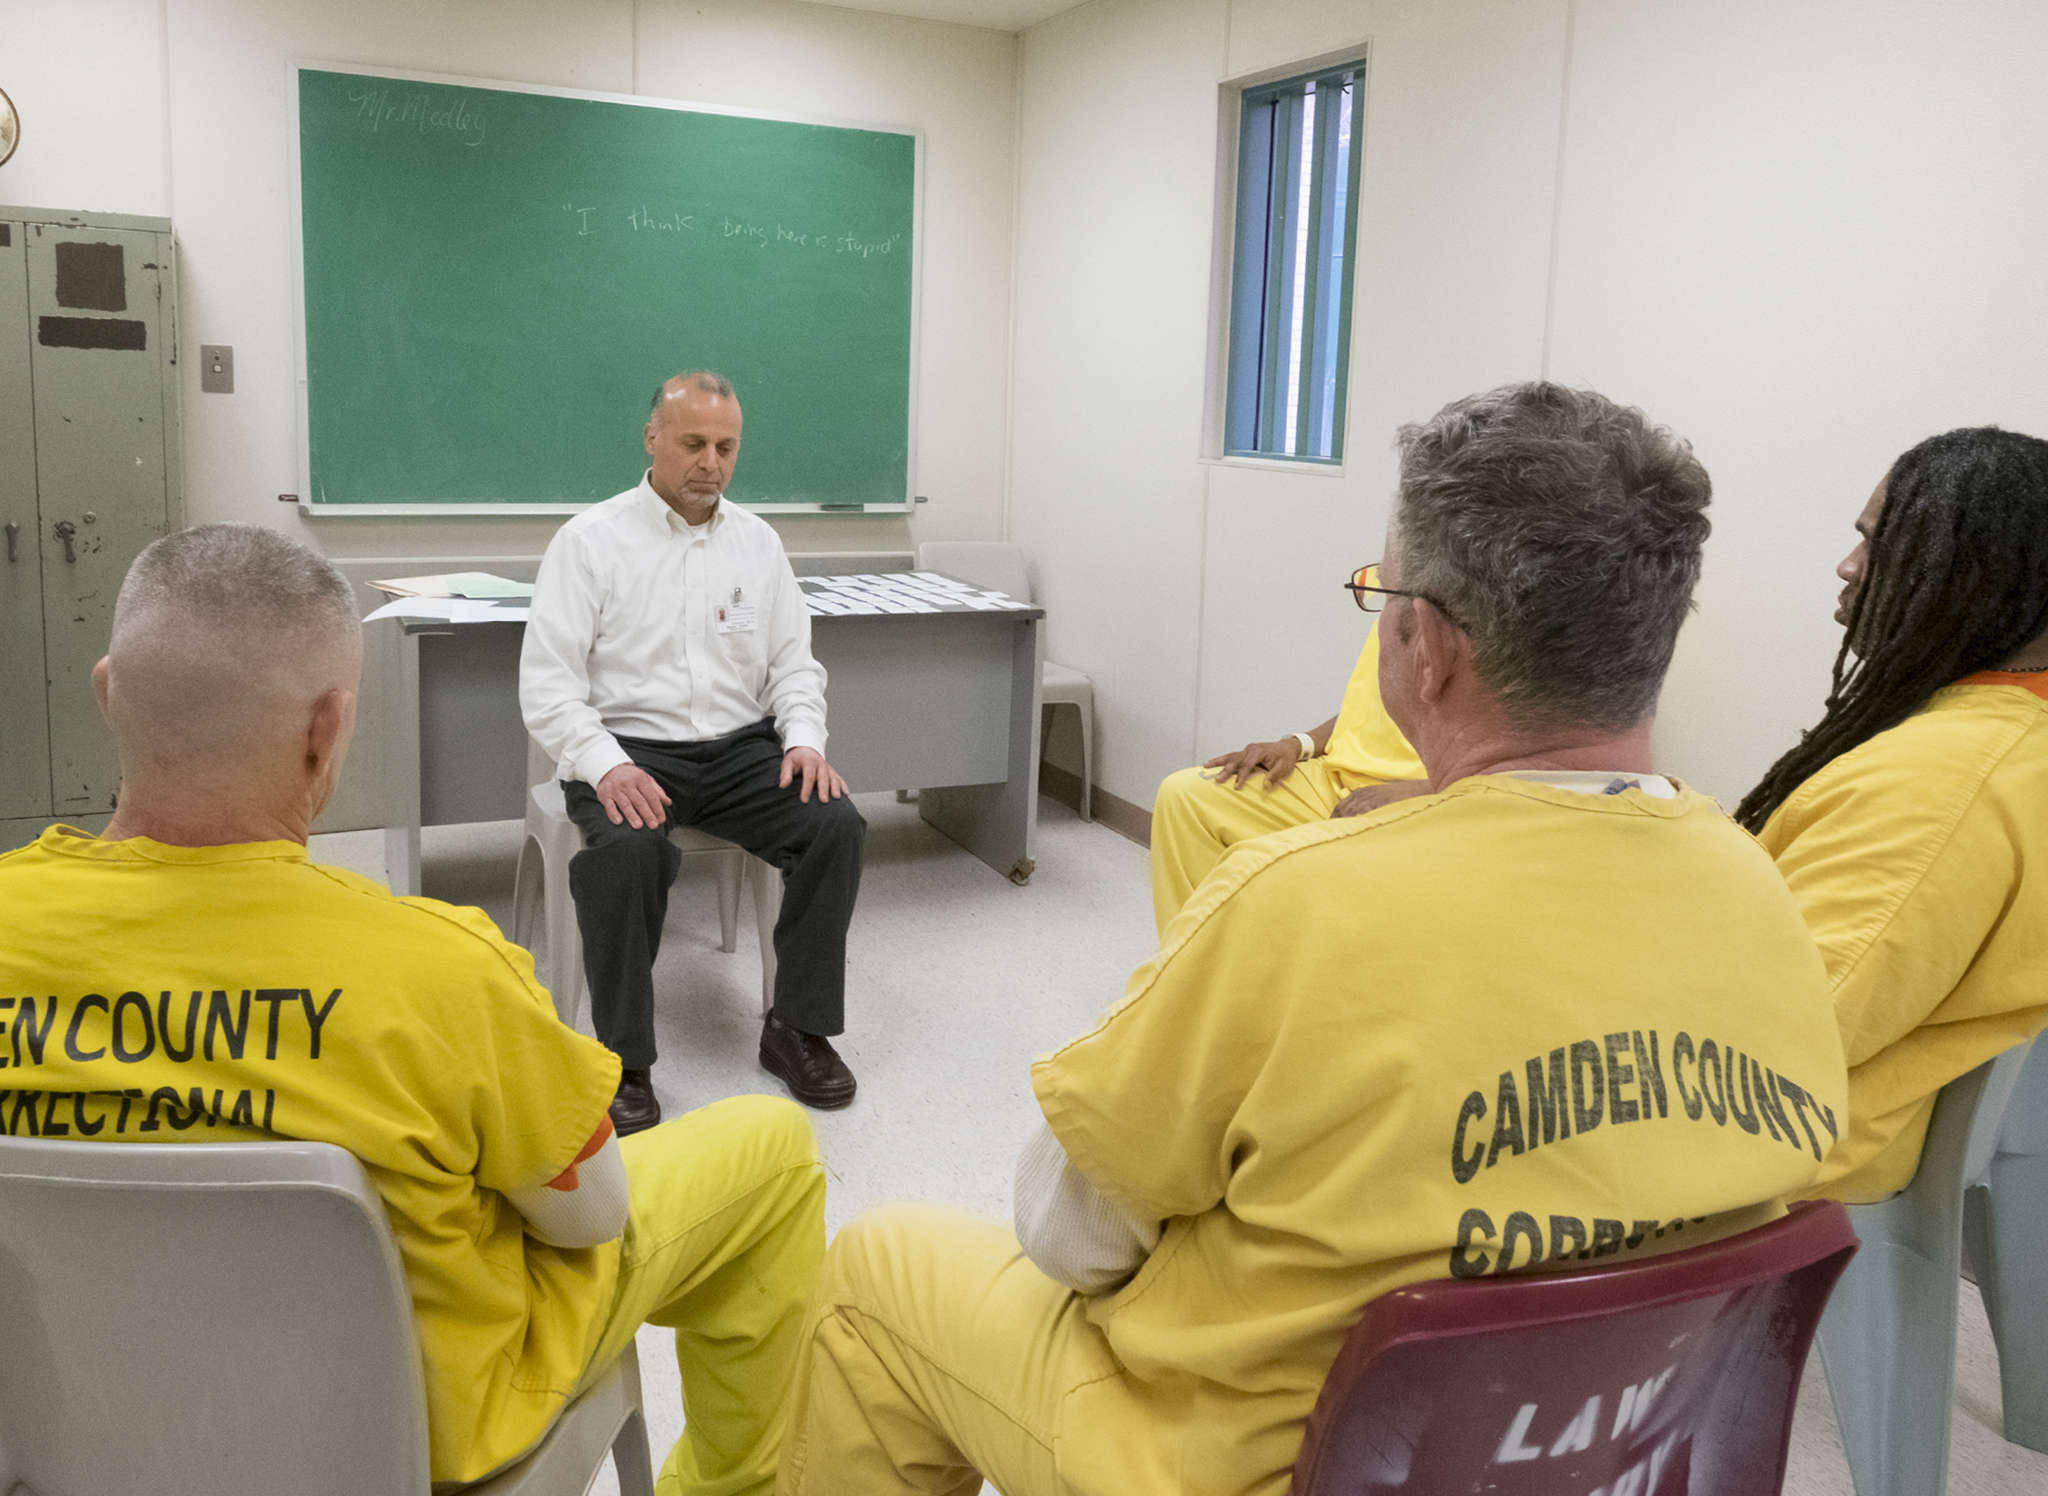 Stephen Michael Tumolo starts a session at the Camden County jail with moments of meditation.